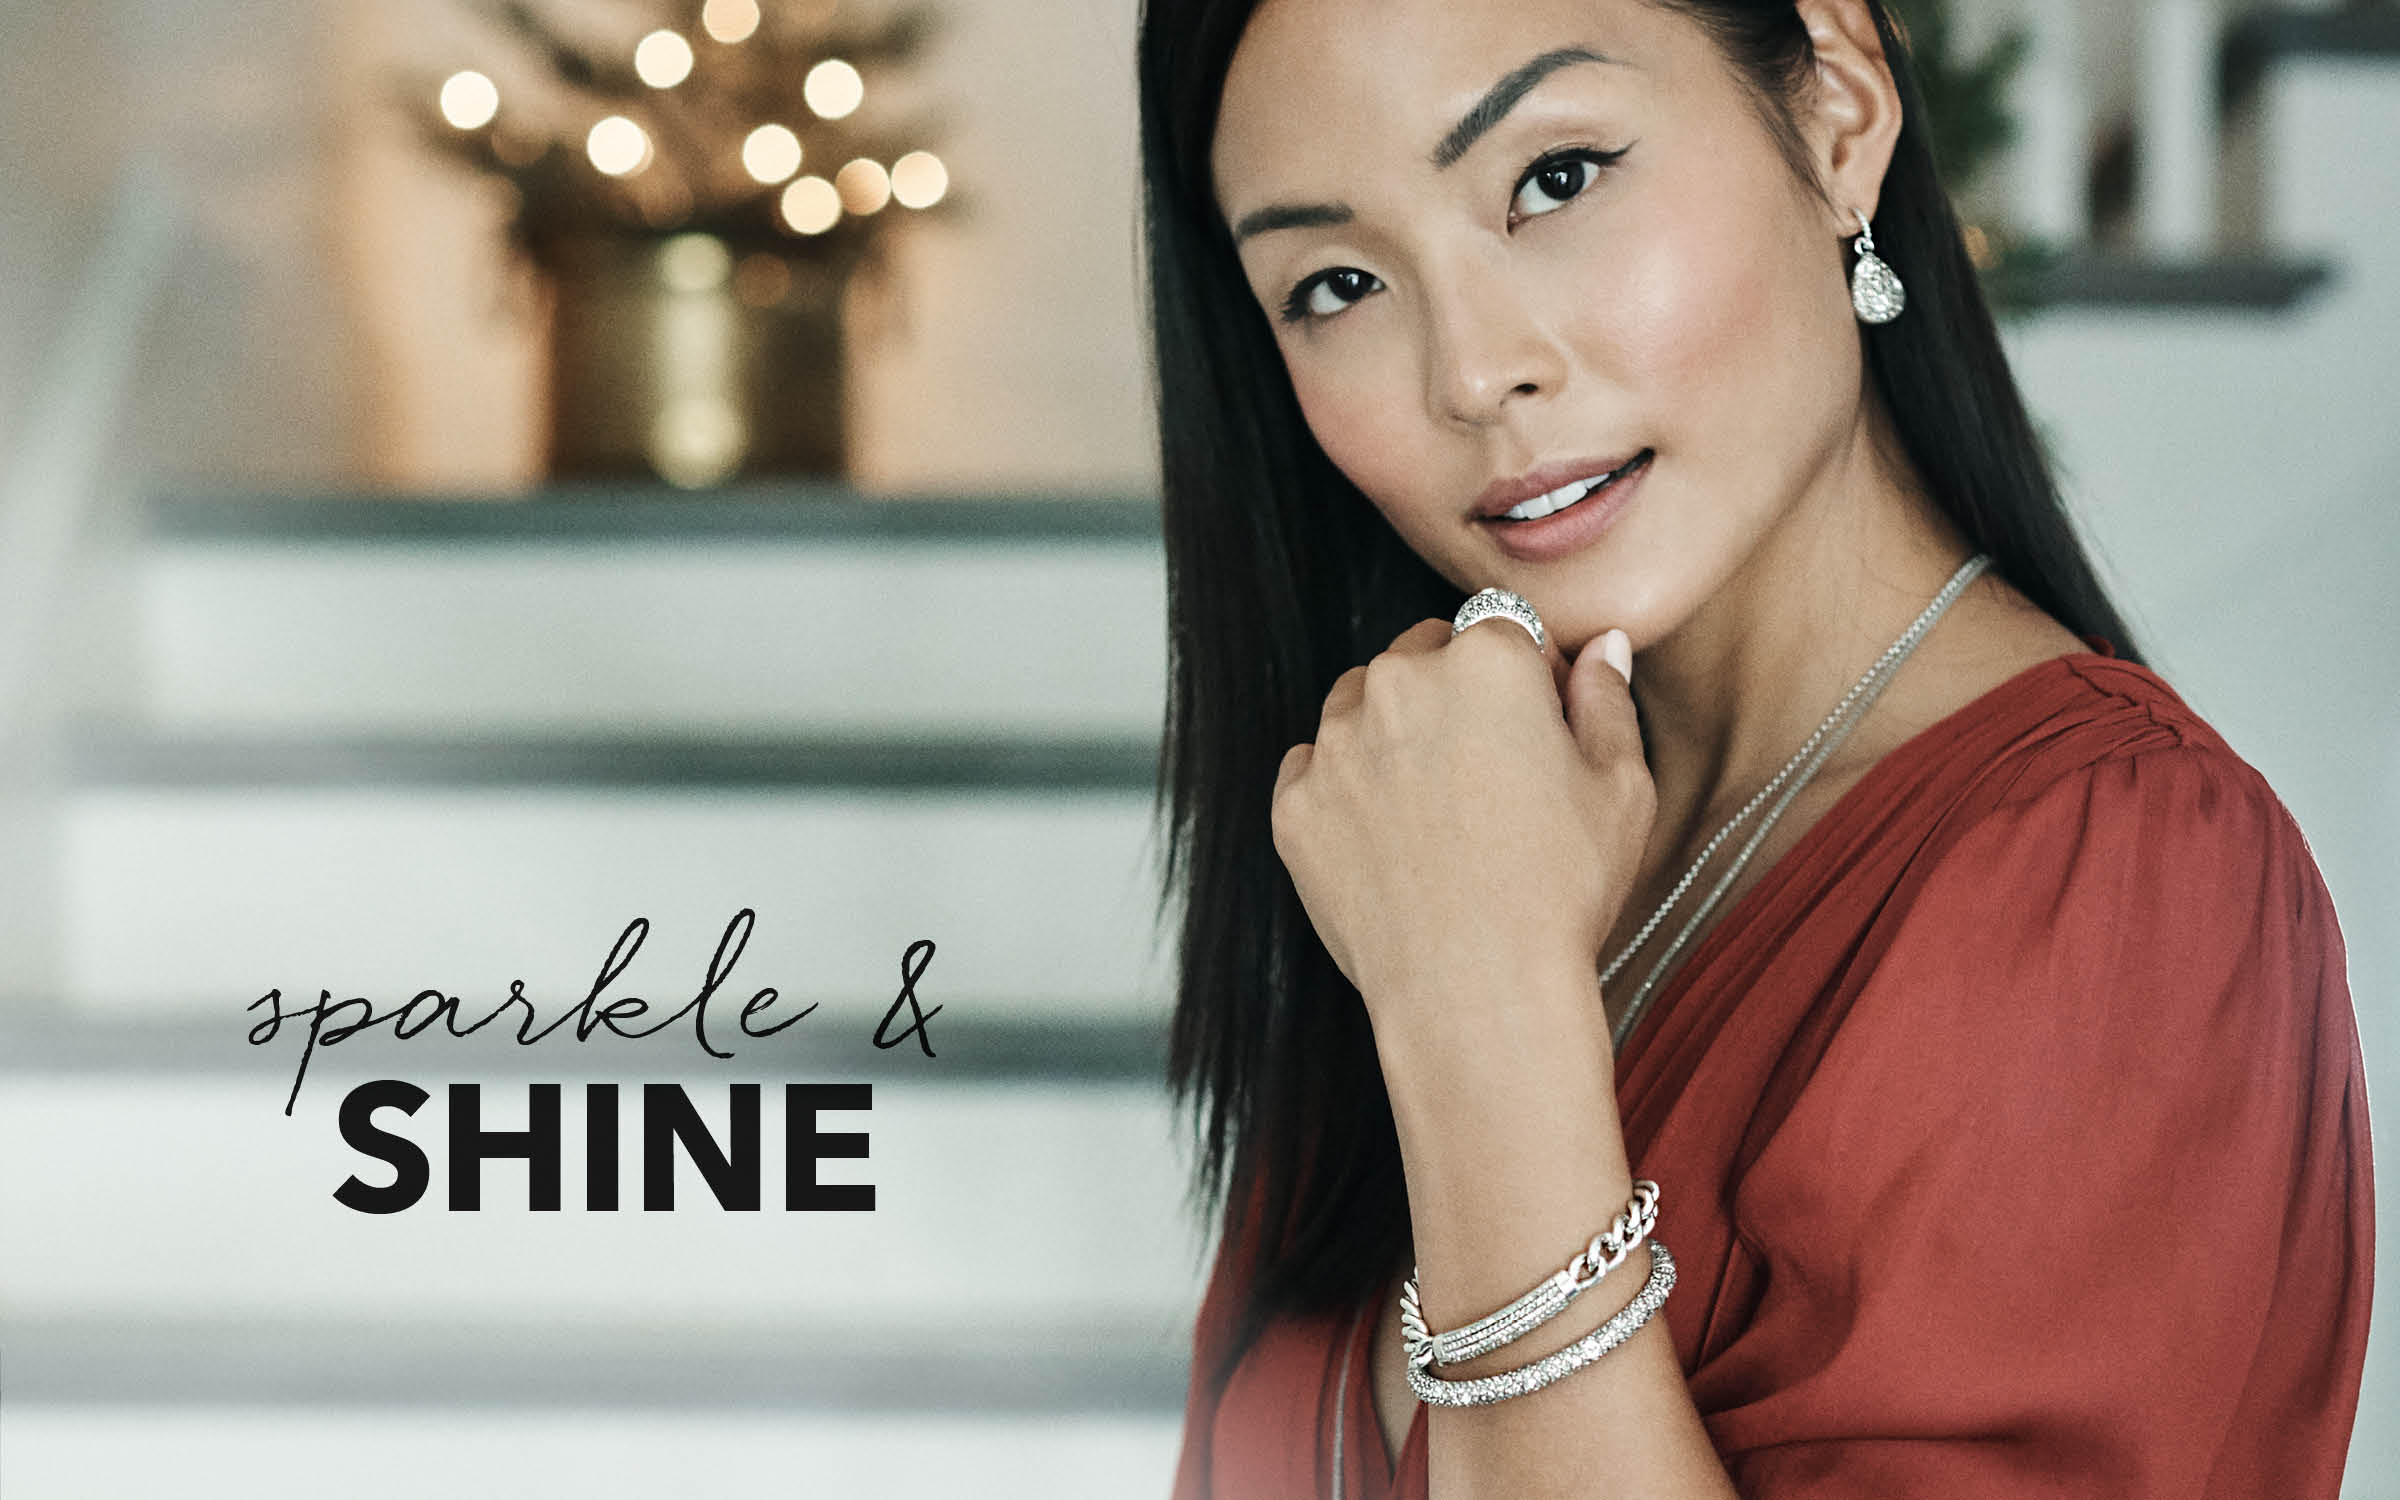 Model wearing sparkle and shine jewelry from brighton